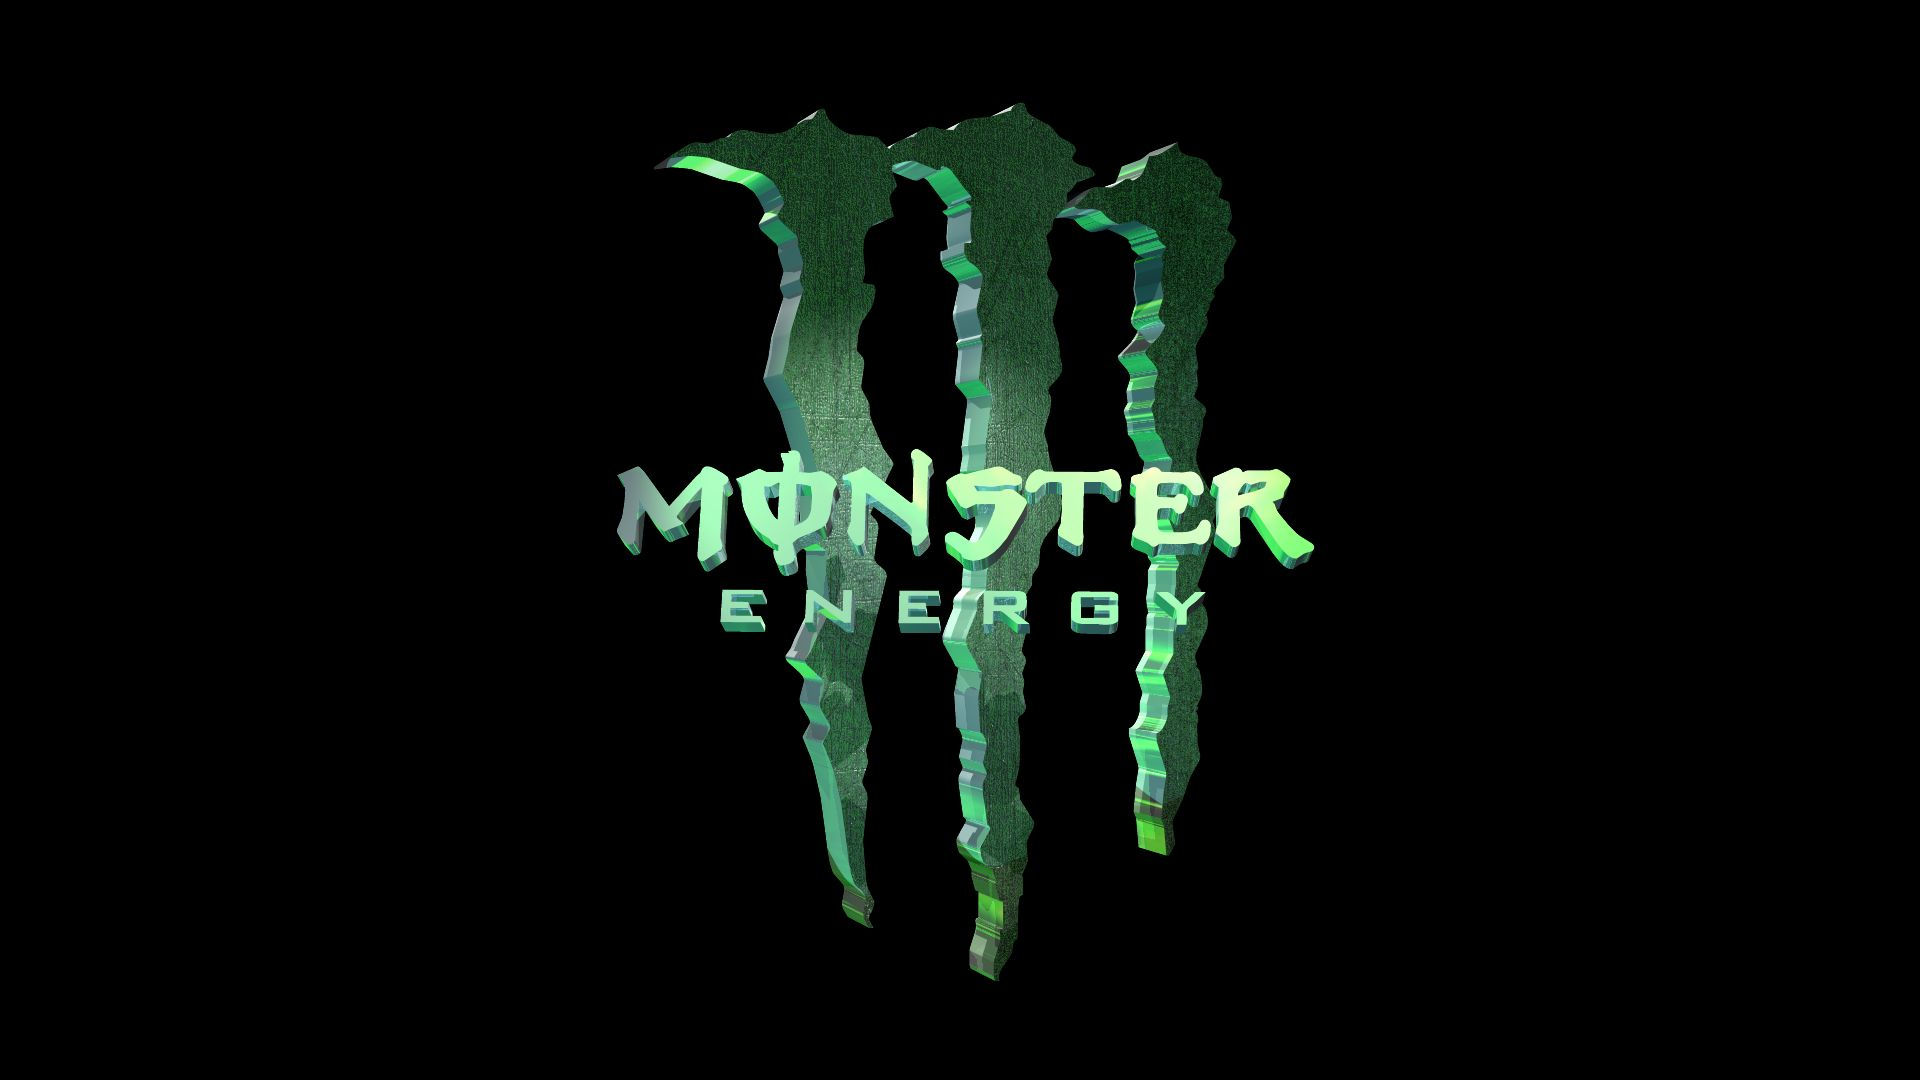 Pics of monster energy logo wallpapers 7 cool monster embroidery pics of monster energy logo wallpapers 7 cool voltagebd Images